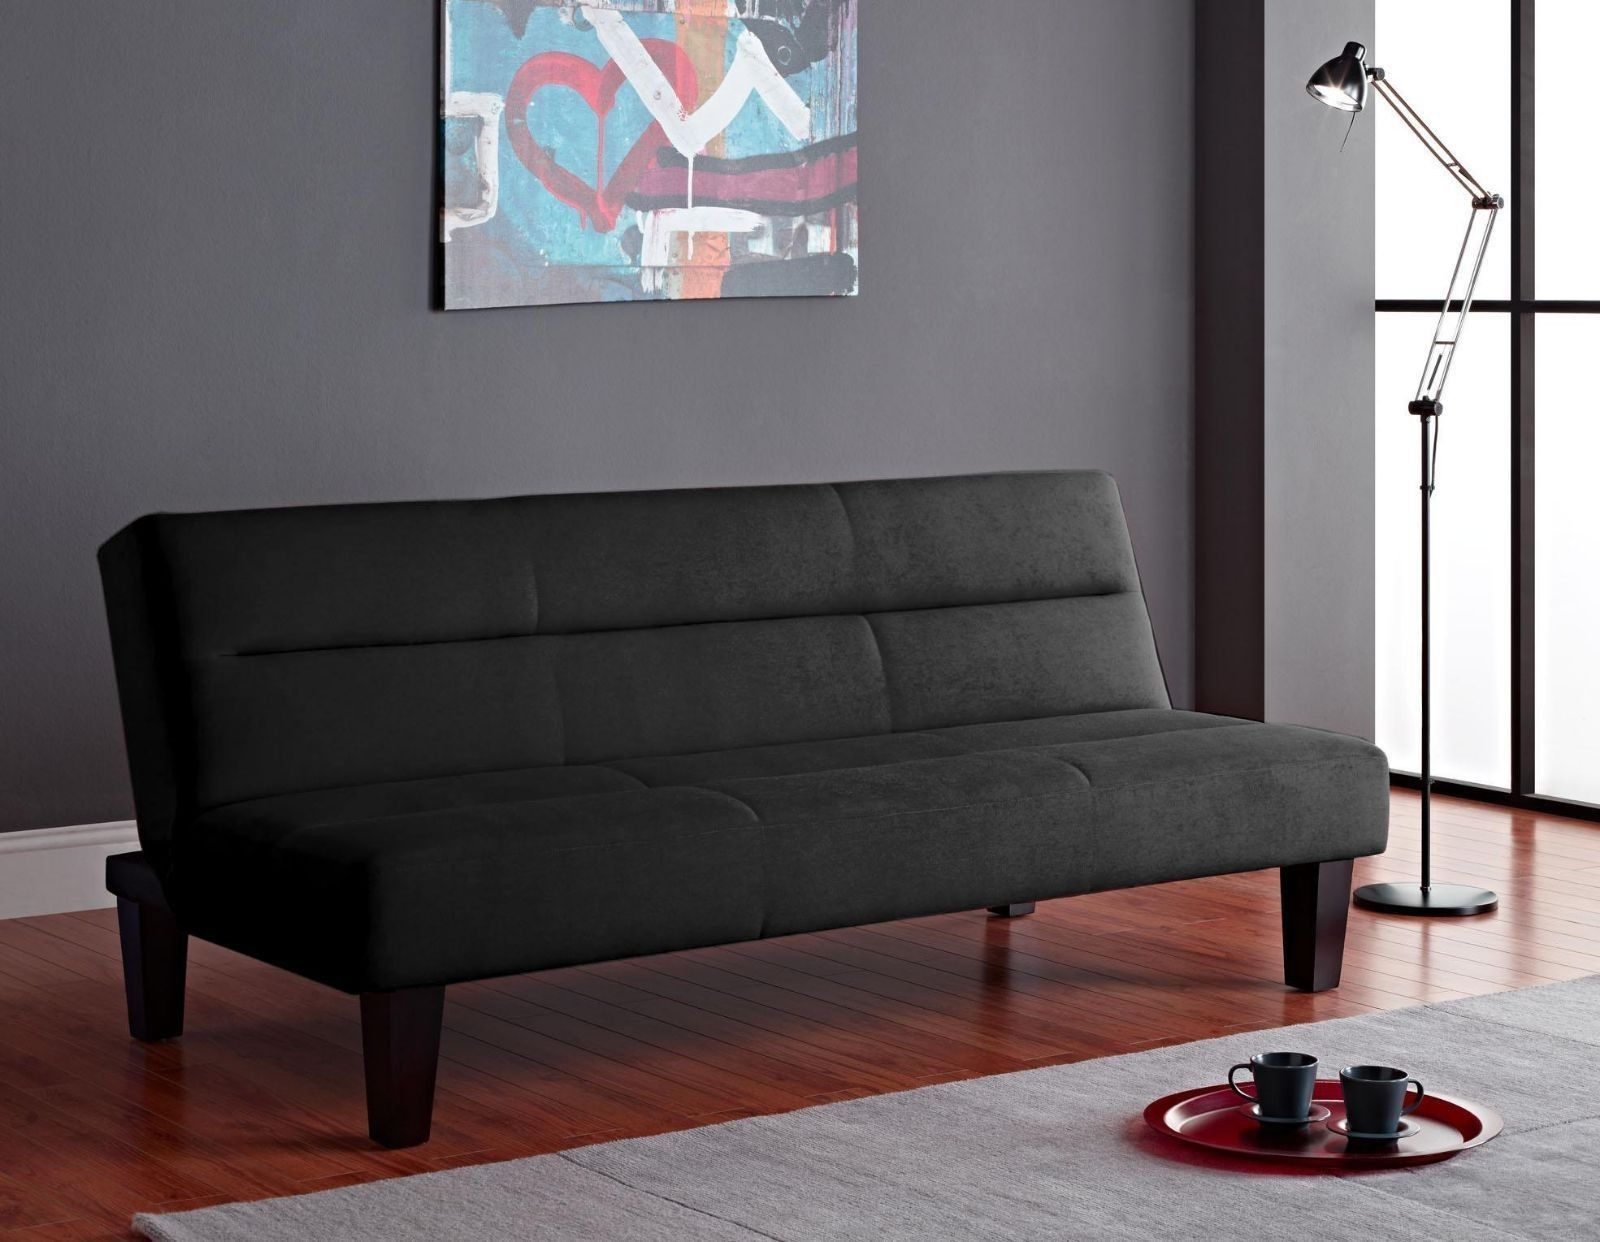 Futon Sleeper Sofa Bed Couch Perfect For Every Space Dorm Modern Styles Futons Frames Covers